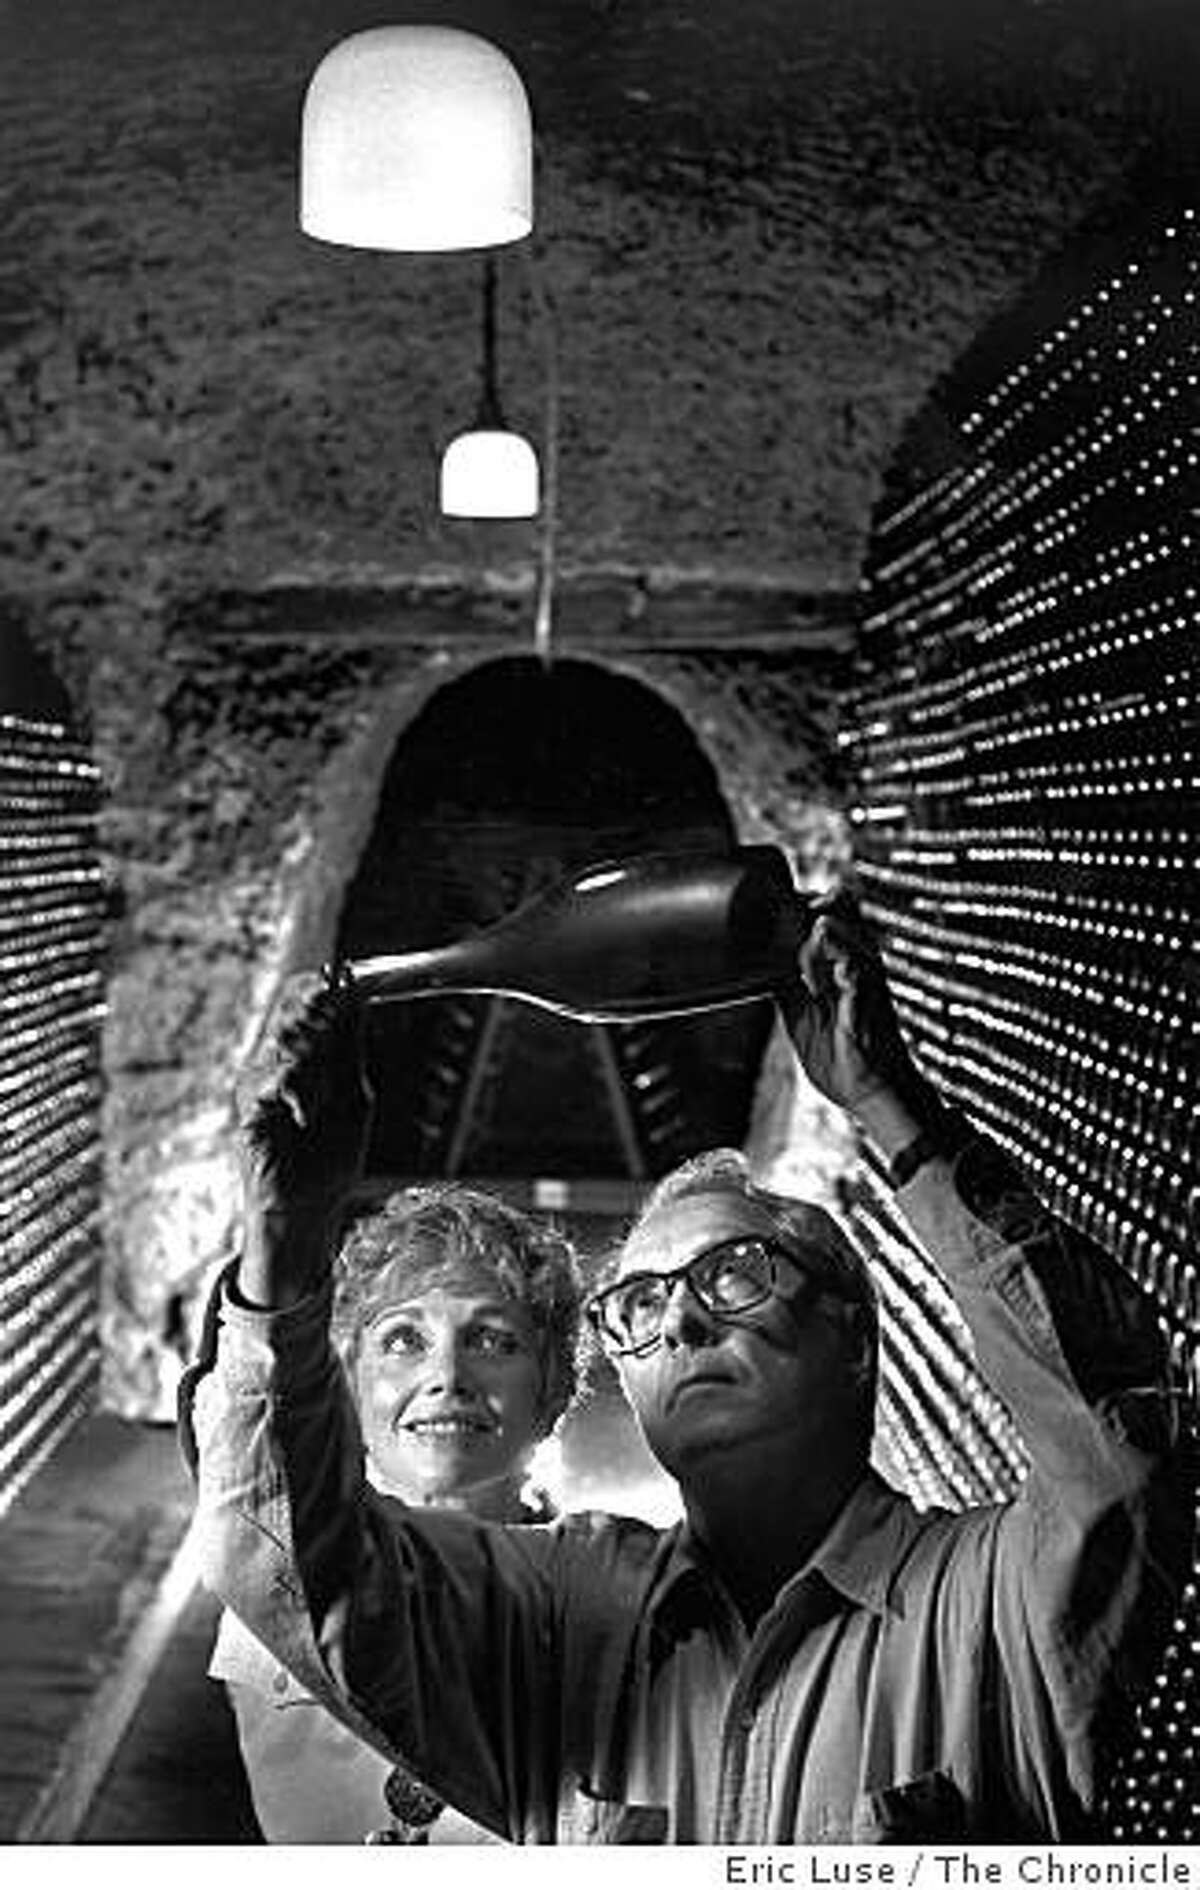 Jack and Jamie Davies, owners of Schramsberg Vineyards and Cellars, in this archive photo dated September 12, 1990. The couple are holding a 1987 bottle of sparkling wine that they were going to release in Europe in 1992. Eric Luse / The Chronicle